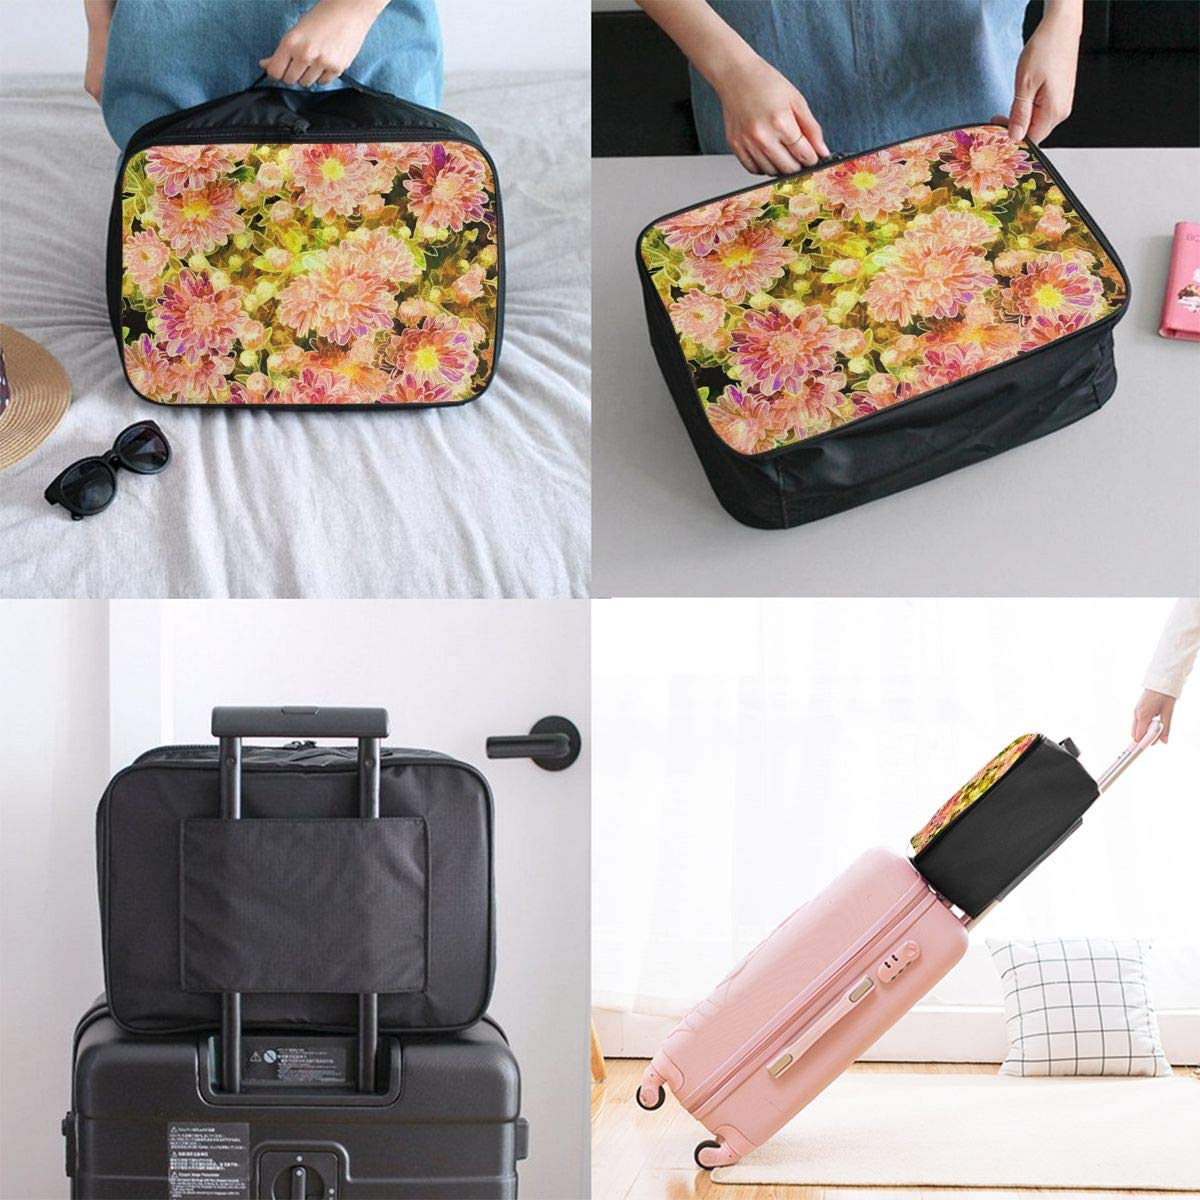 Abstract Flower Art Painting Colorful Travel Lightweight Waterproof Foldable Storage Carry Luggage Large Capacity Portable Luggage Bag Duffel Bag